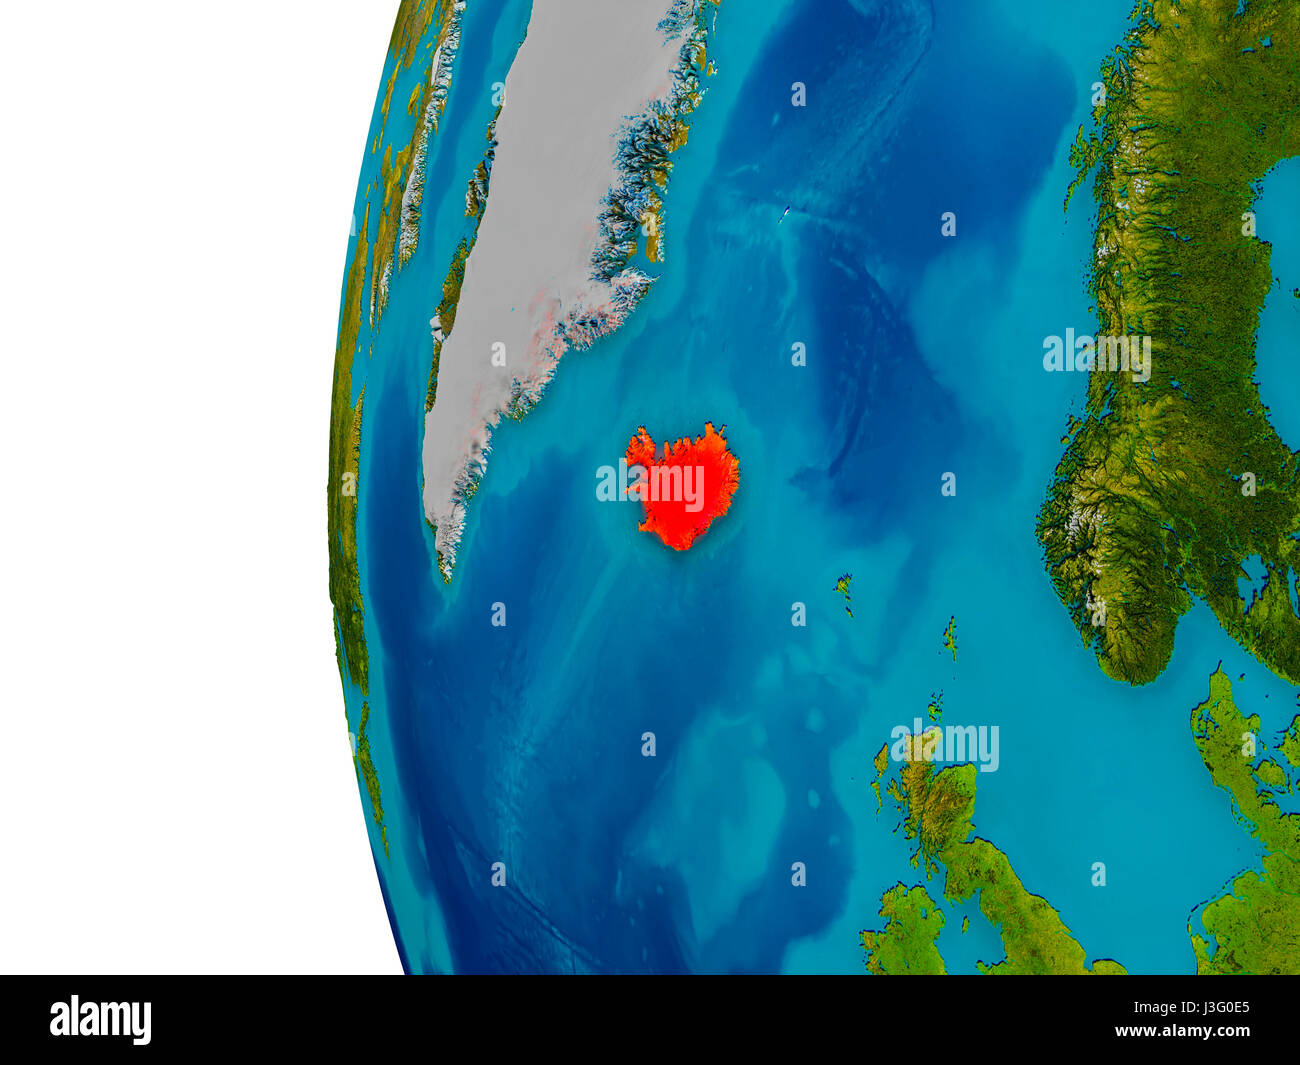 Map satellite geography iceland stock photos map satellite iceland highlighted in red on detailed model of planet earth 3d illustration elements of gumiabroncs Gallery